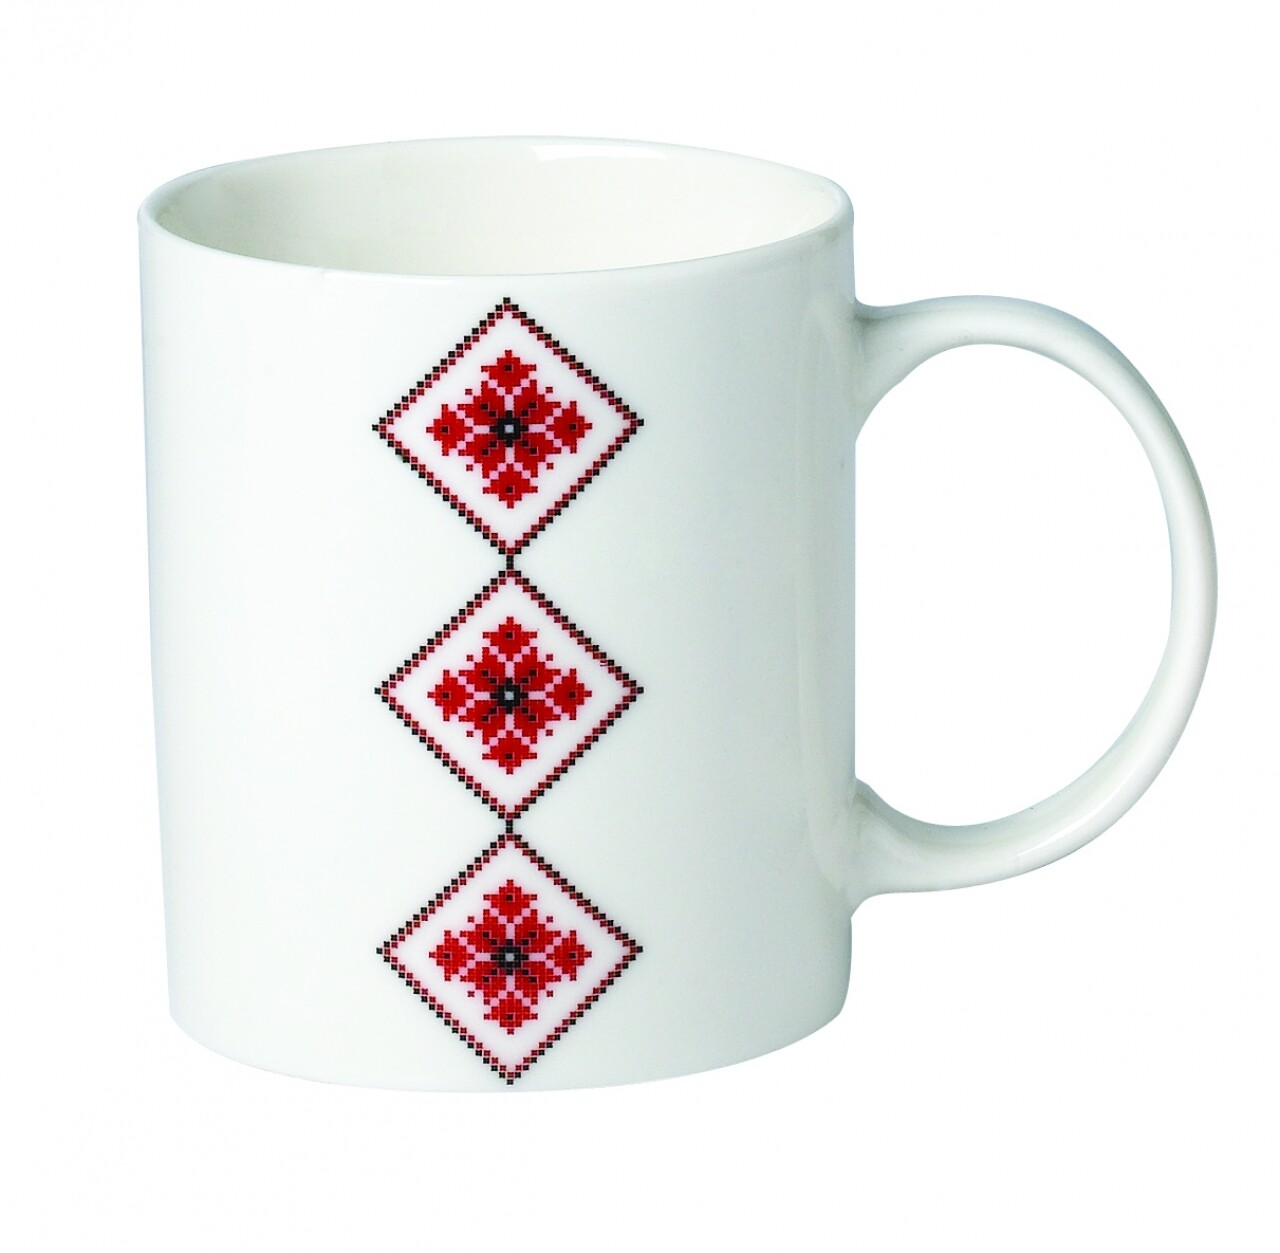 Cana Romb, Heinner Home, 310 ml, New Bone China, multicolor